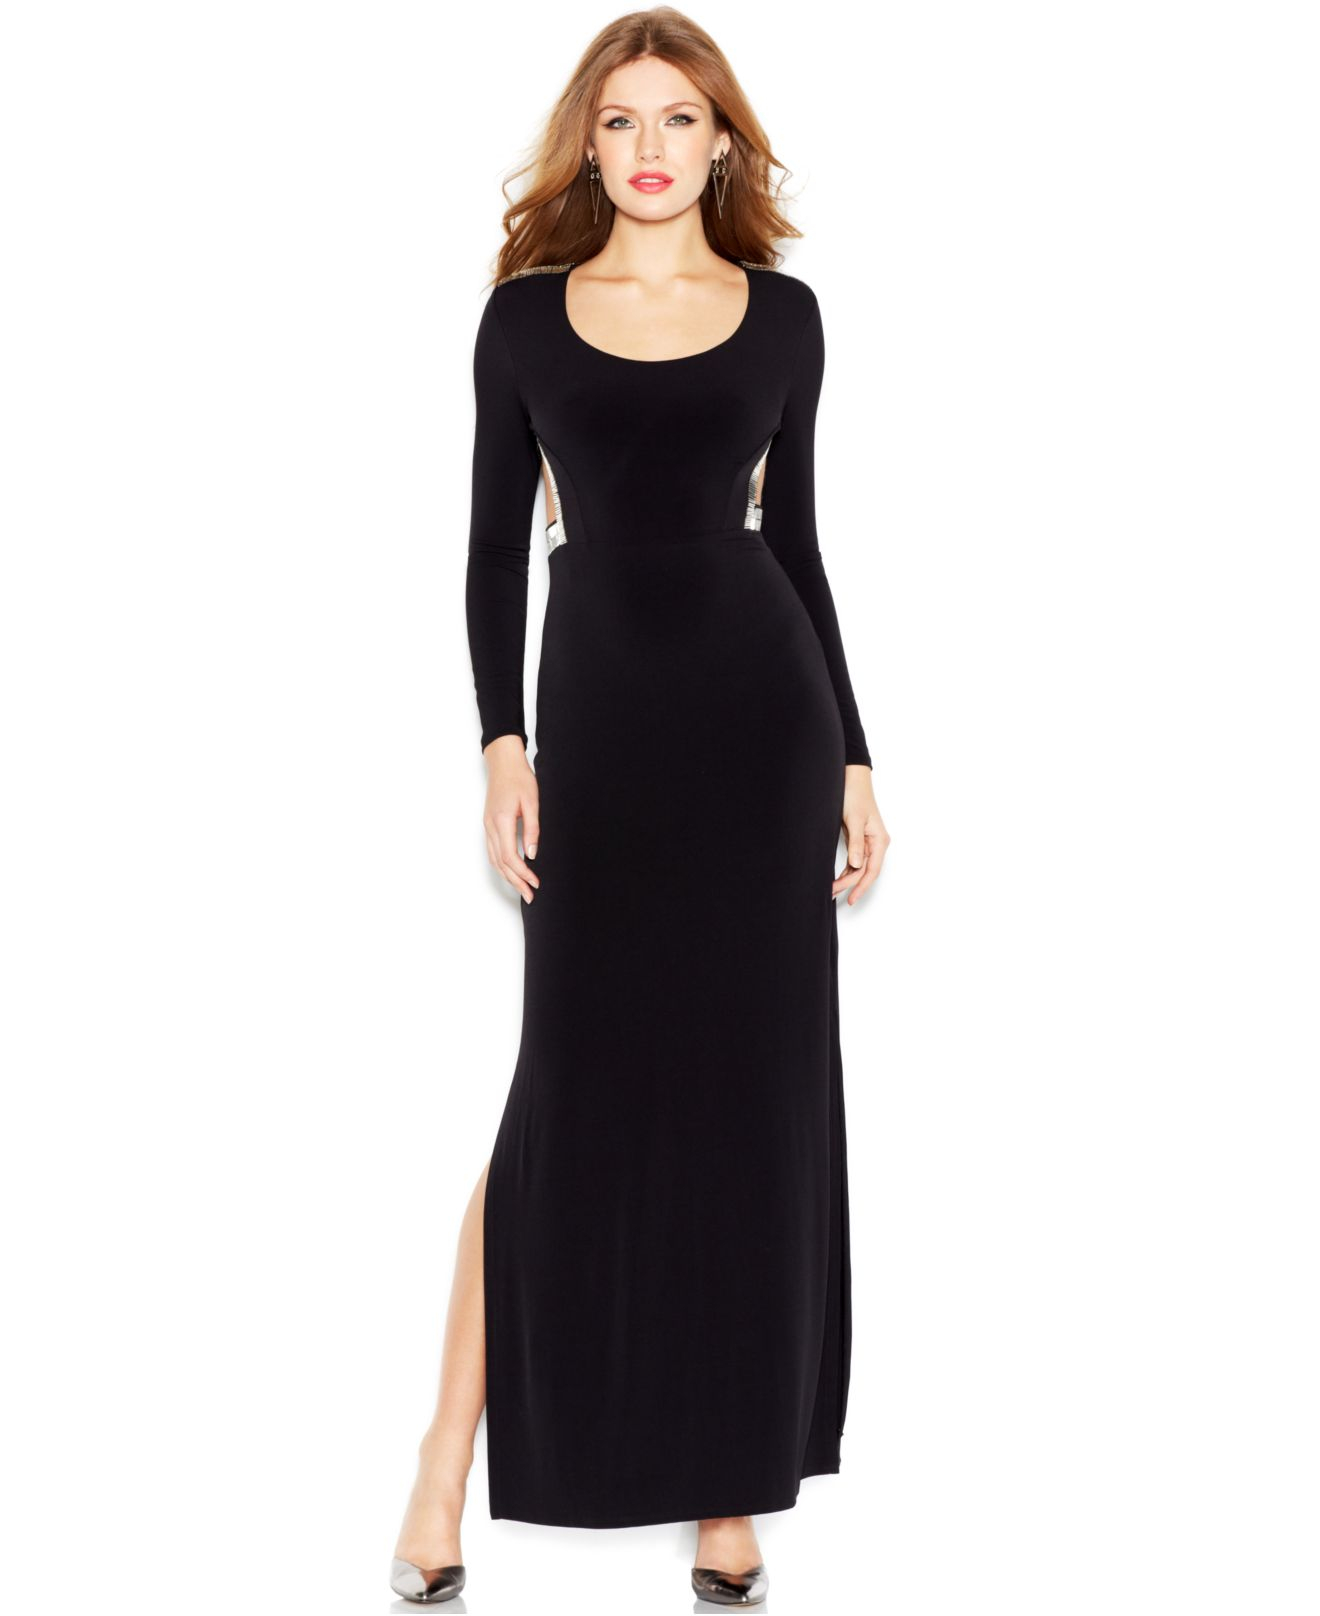 Guess Long-Sleeve Embellished Cutout Maxi Dress in Black | Lyst